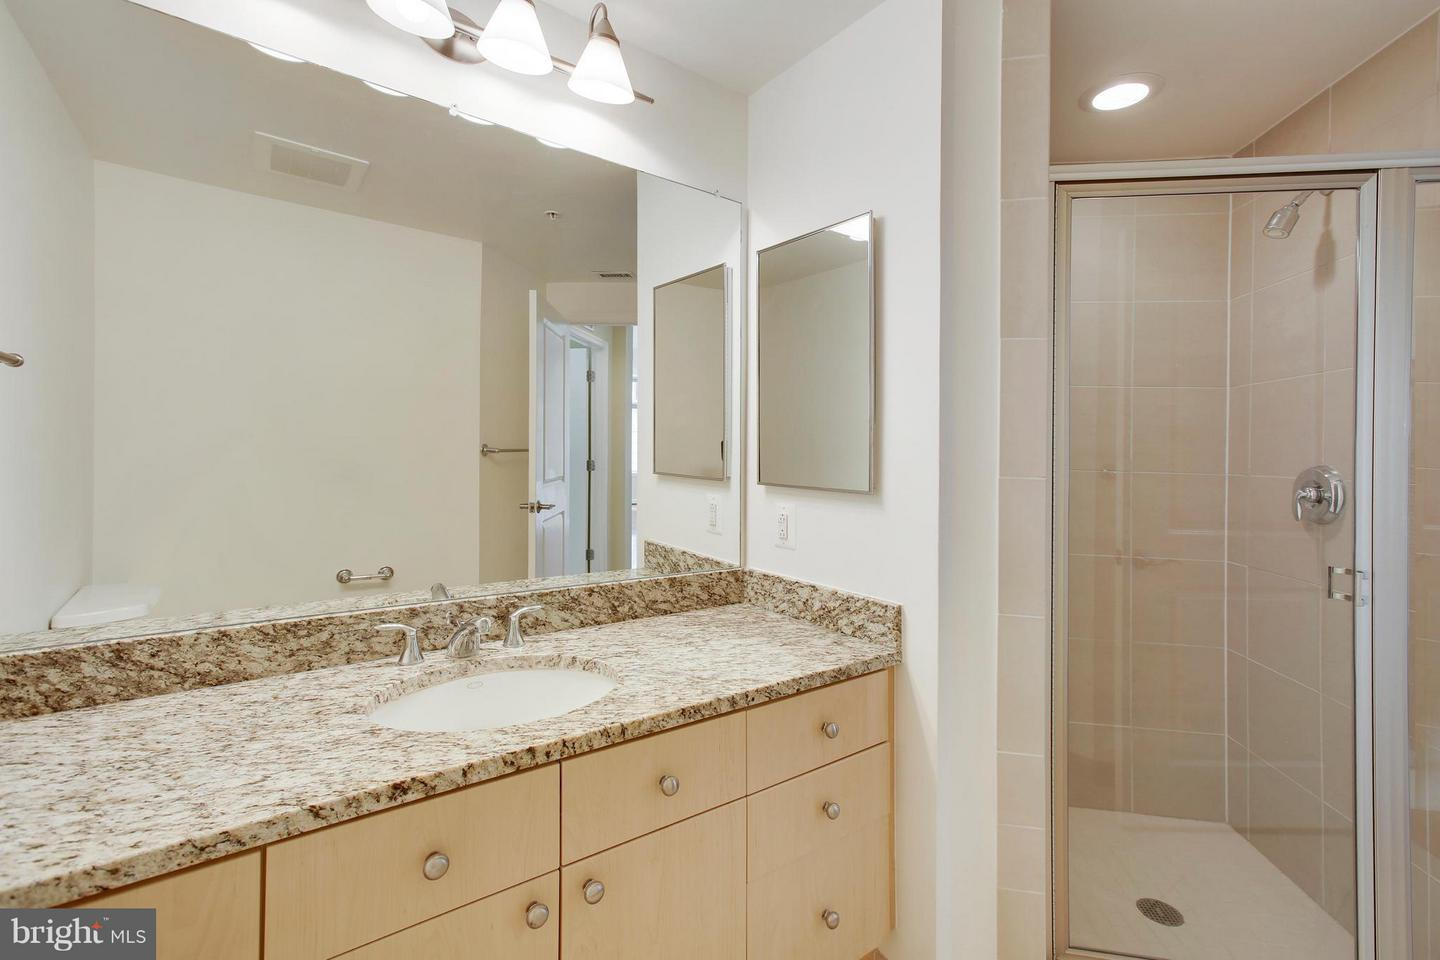 Additional photo for property listing at 11990 Market St #303 11990 Market St #303 Reston, Virginia 20190 United States